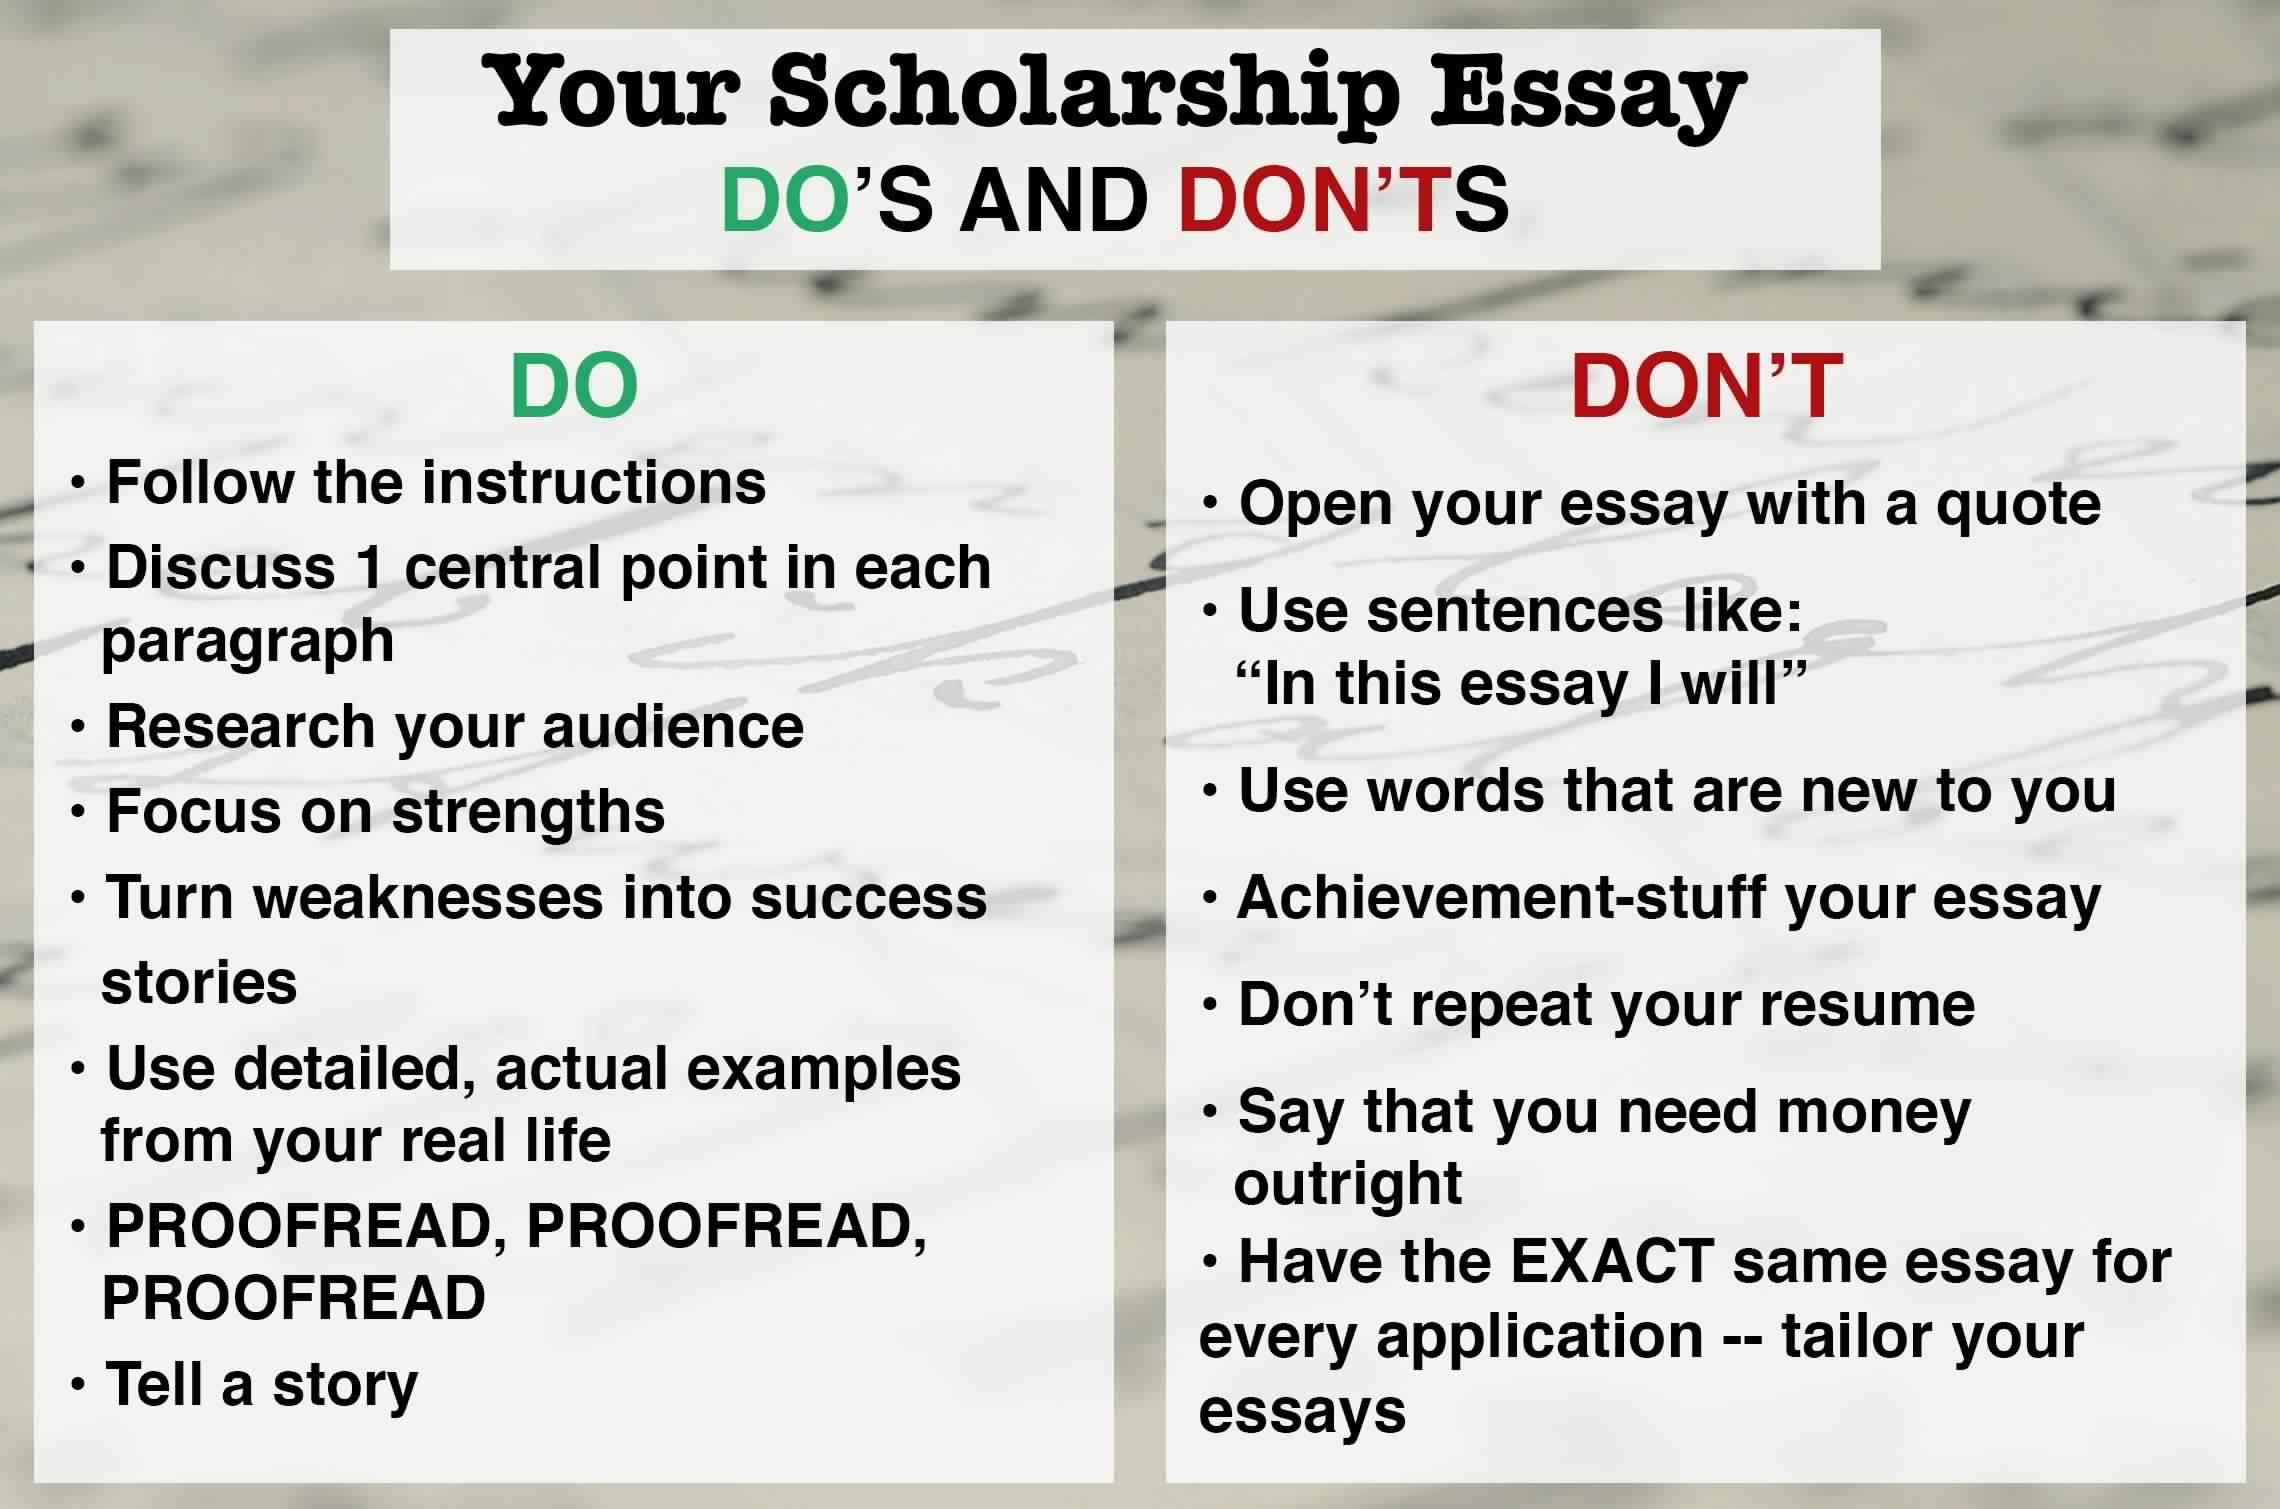 How to write an application essay yourself